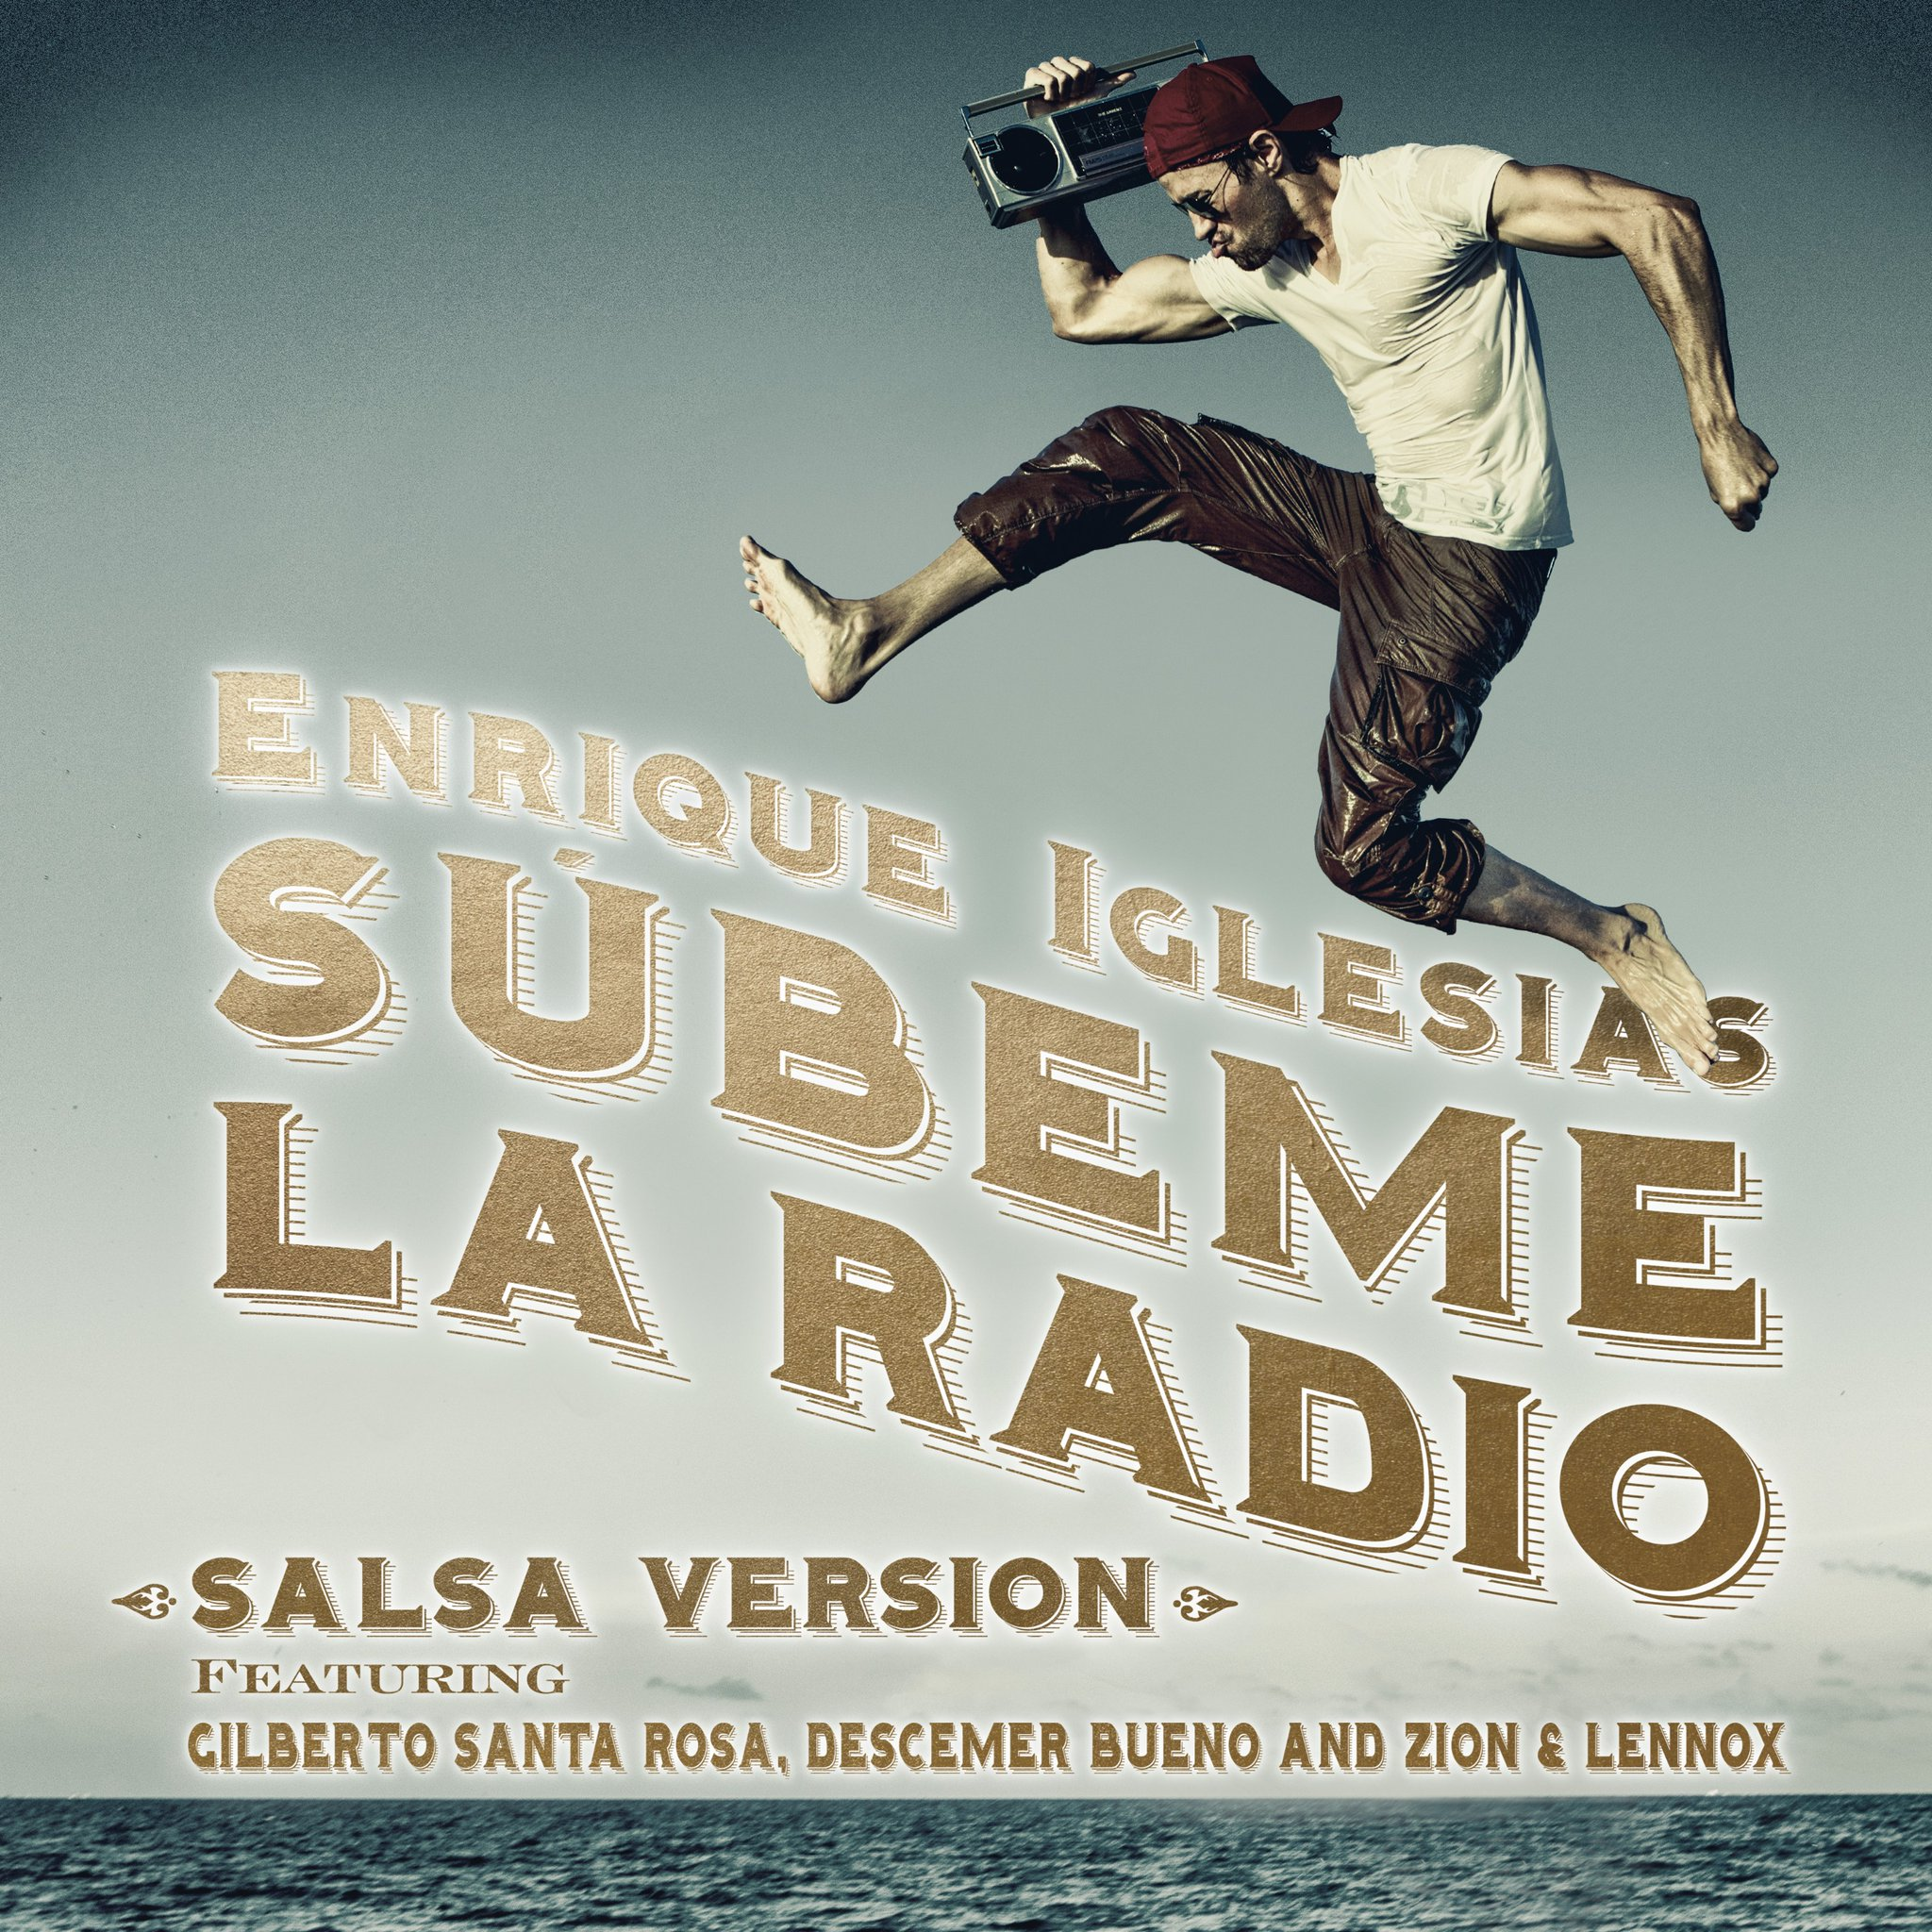 Súbeme la radio (Salsa version)